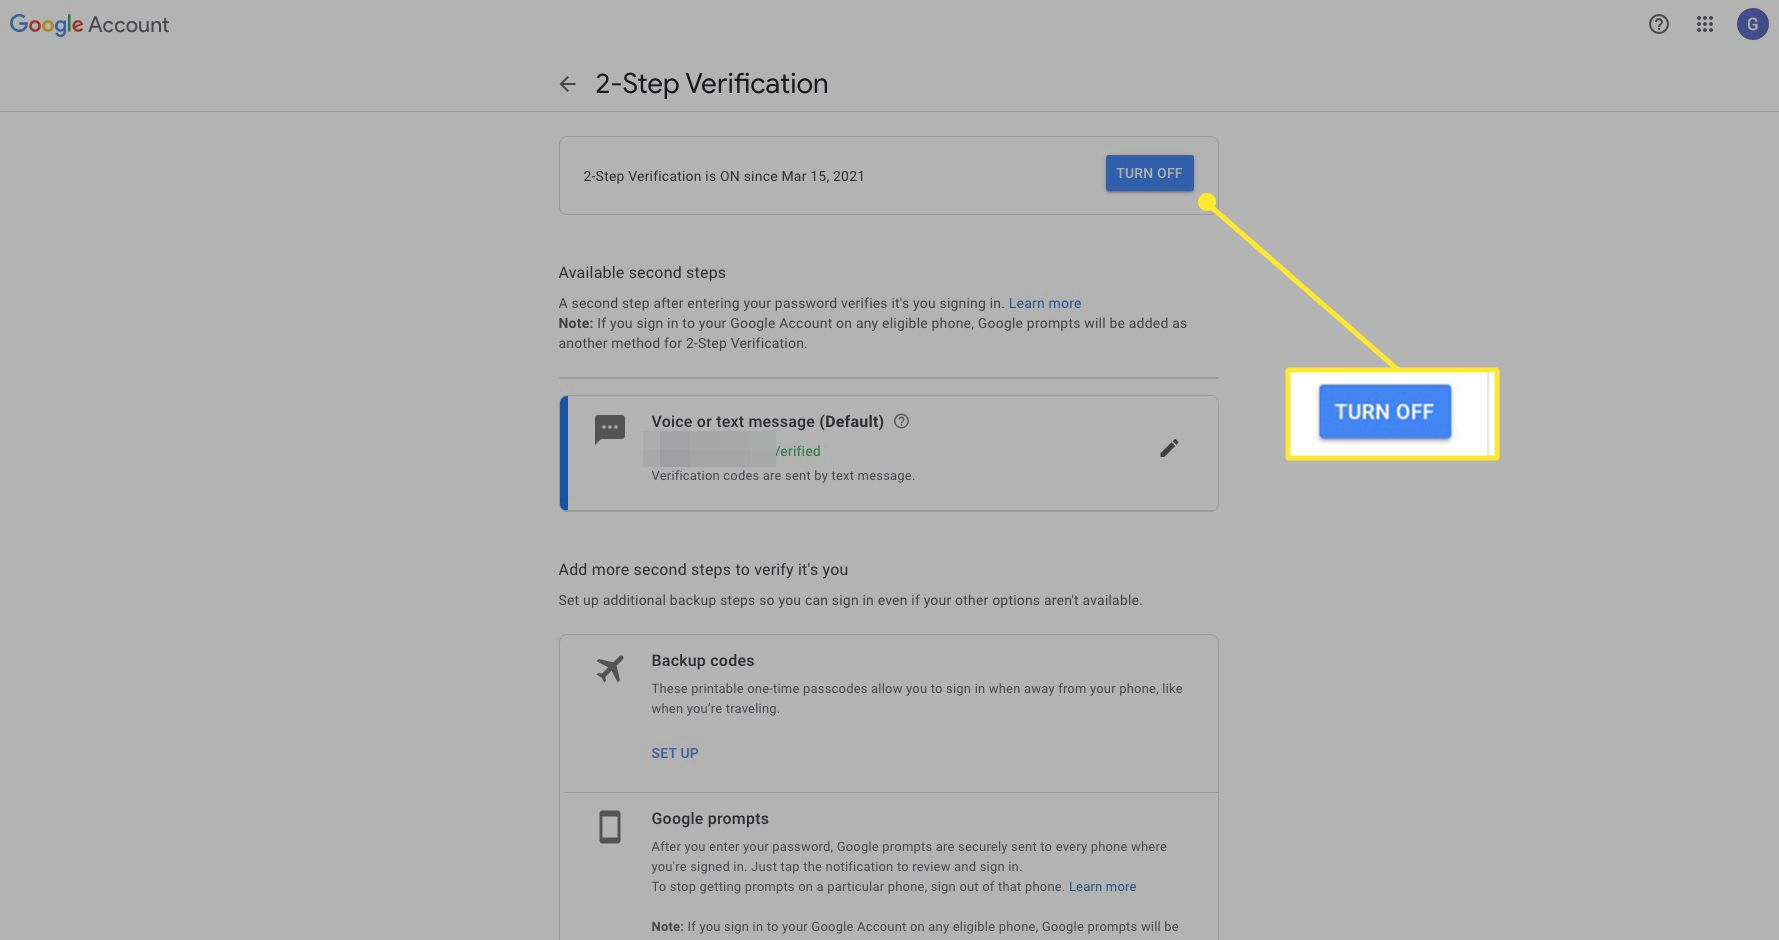 Google 2-Step verification settings with Turn Off highlighted